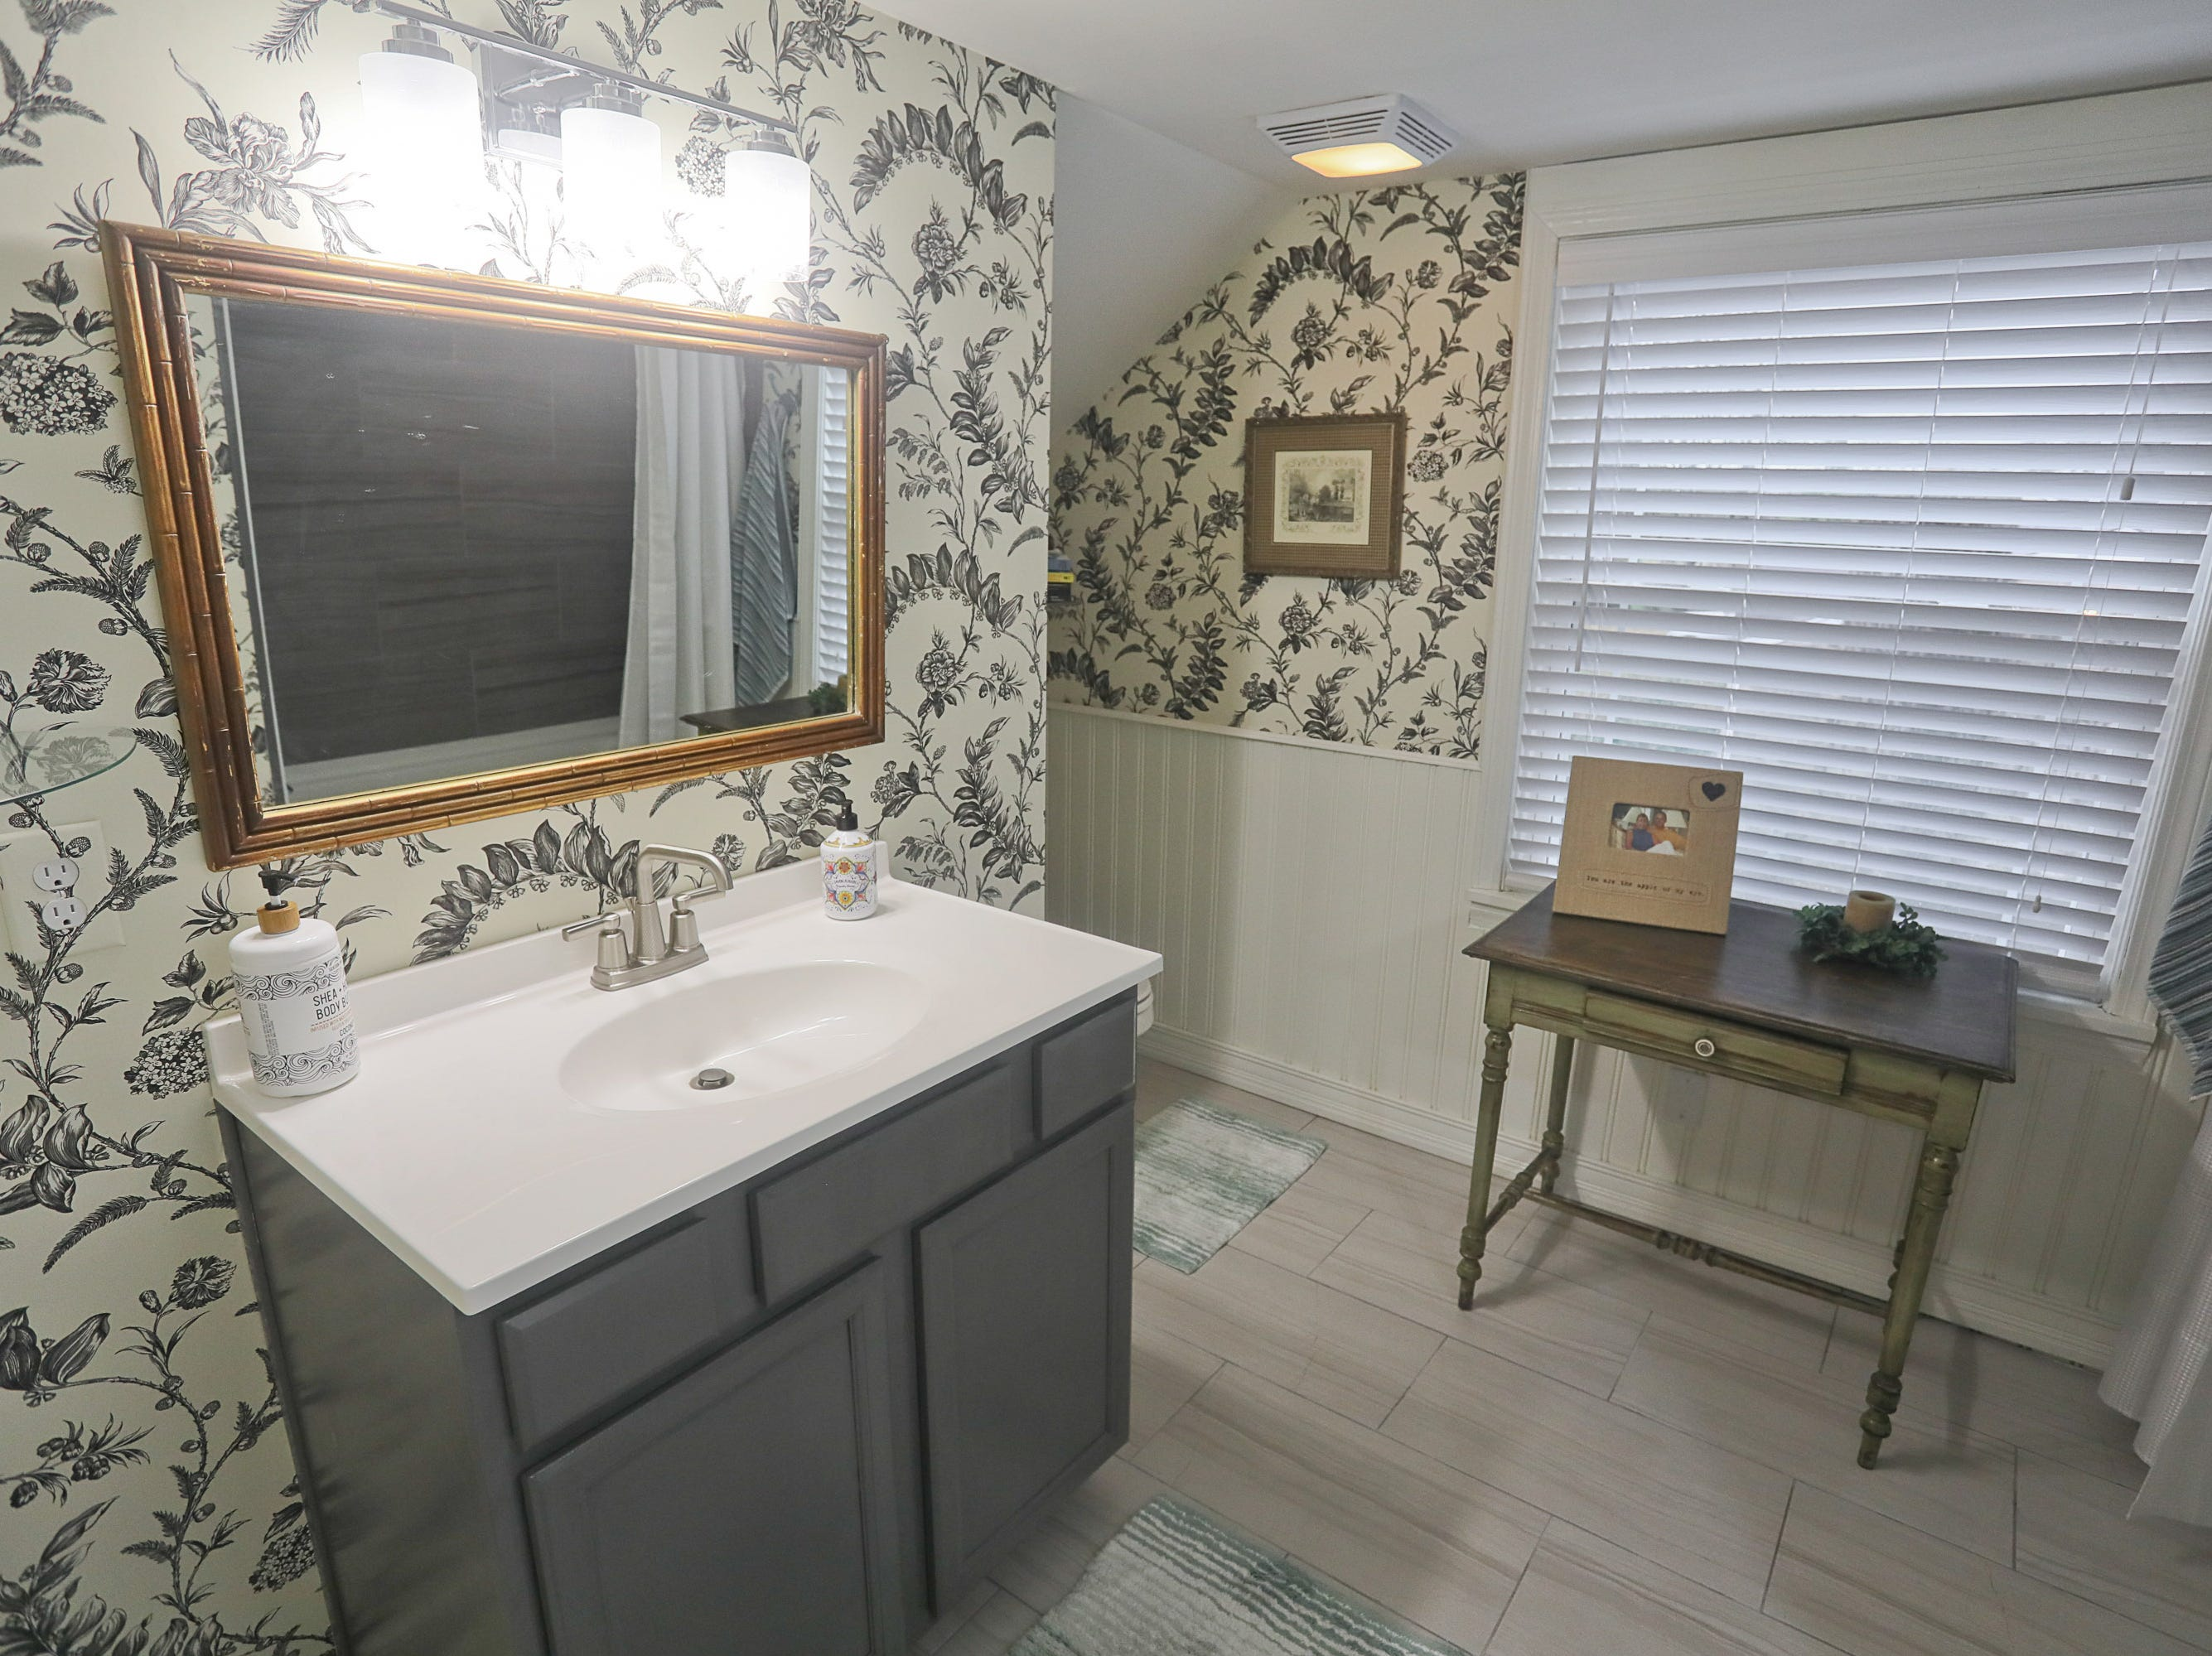 A guest bathroom at the home of Kelli Lorenzen in Louisville, KY. Feb. 12, 2019